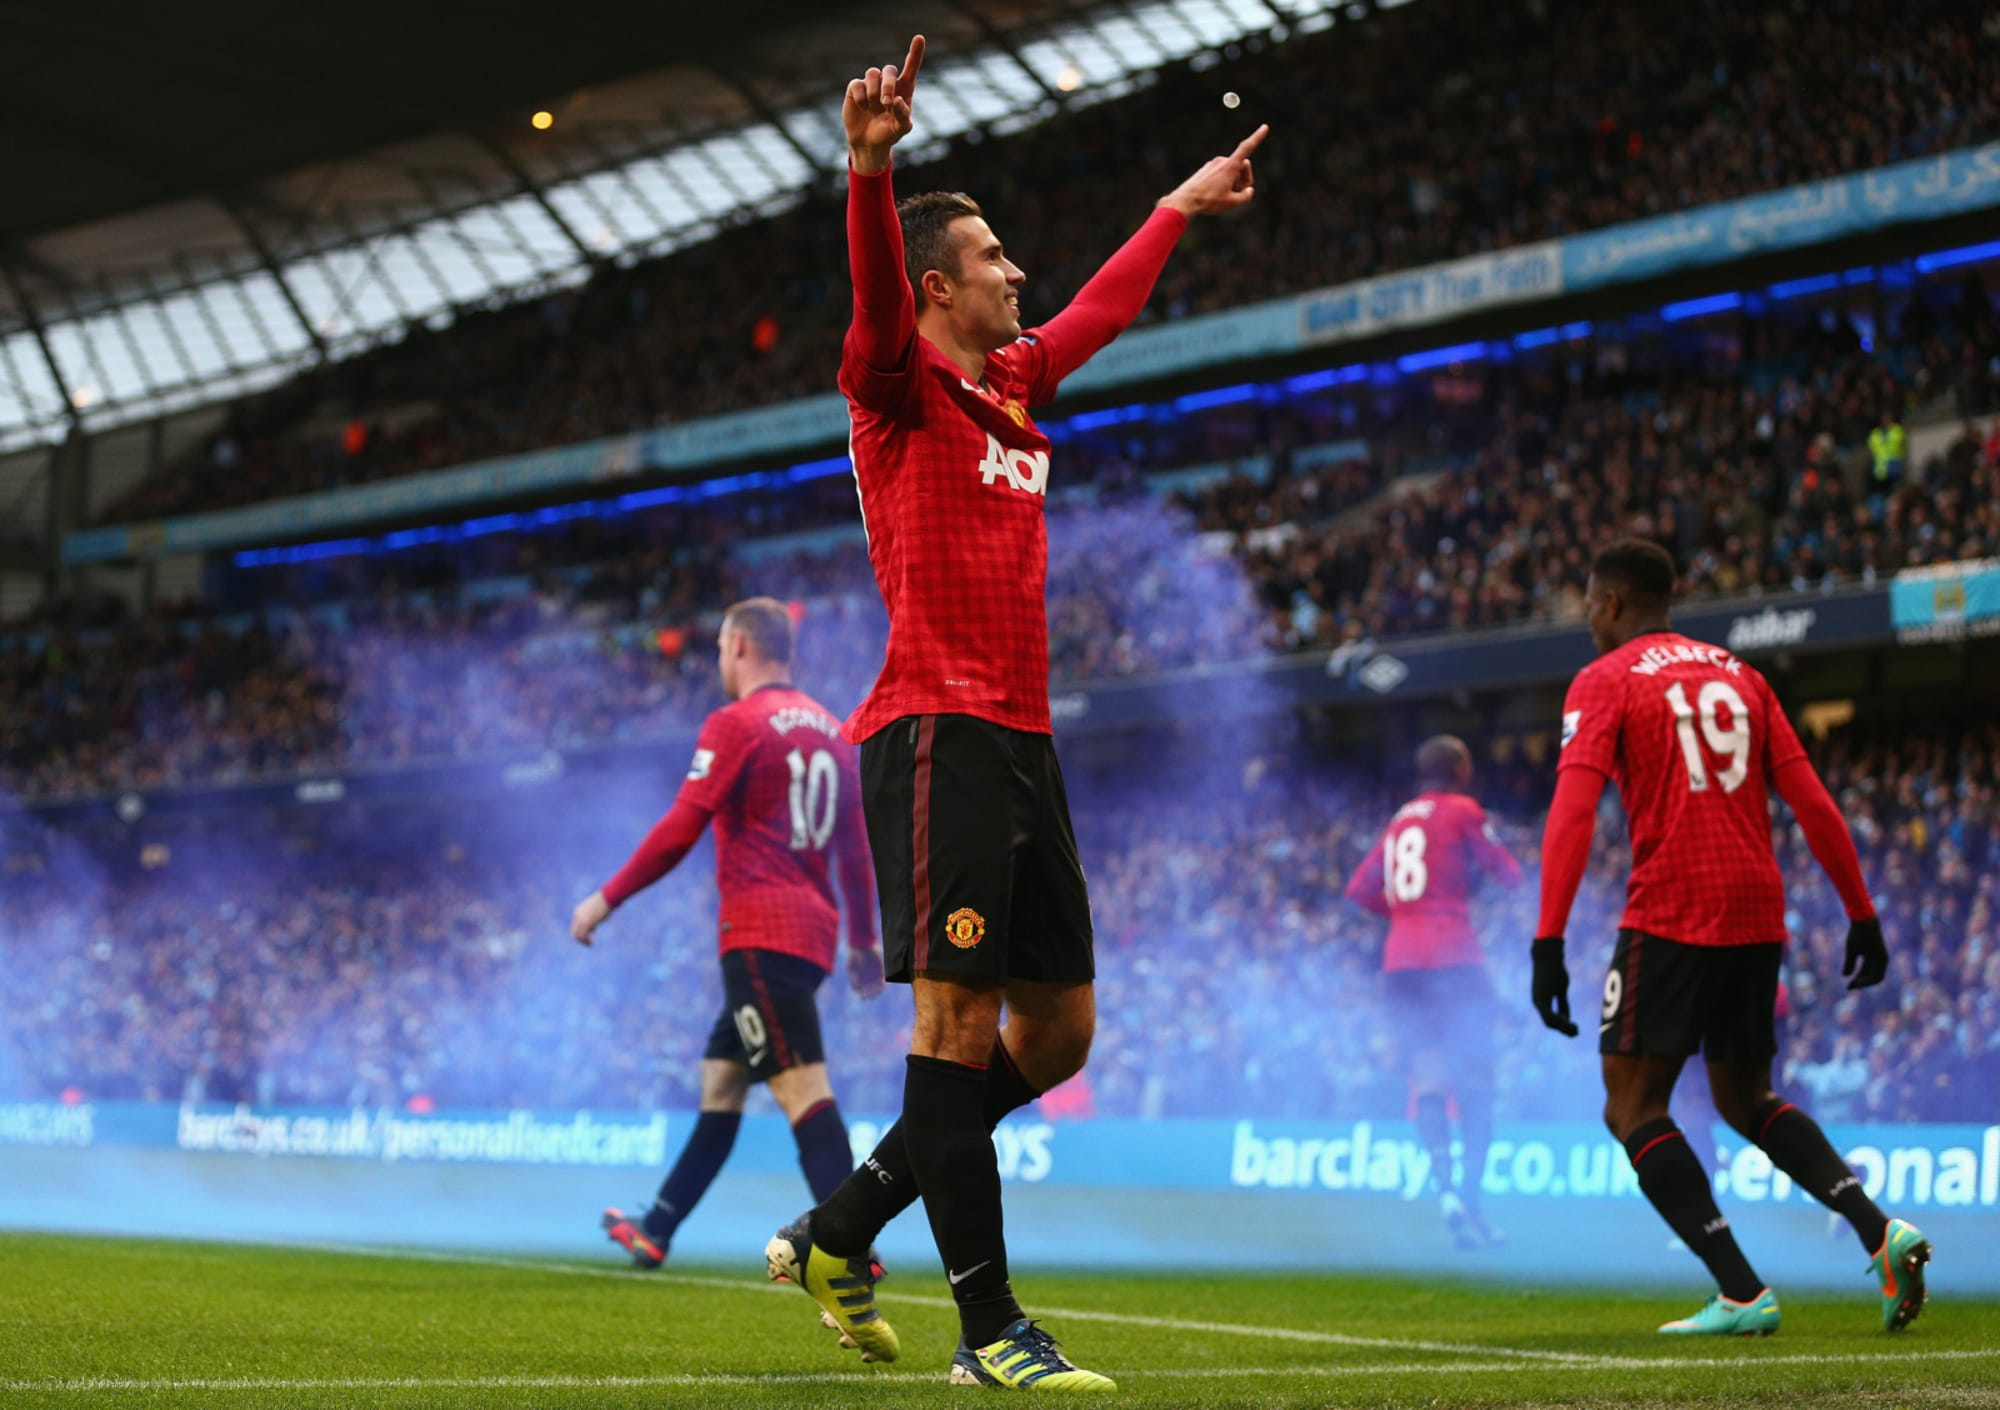 Derby Day Memories: Manchester City v Manchester United 9th December 2012